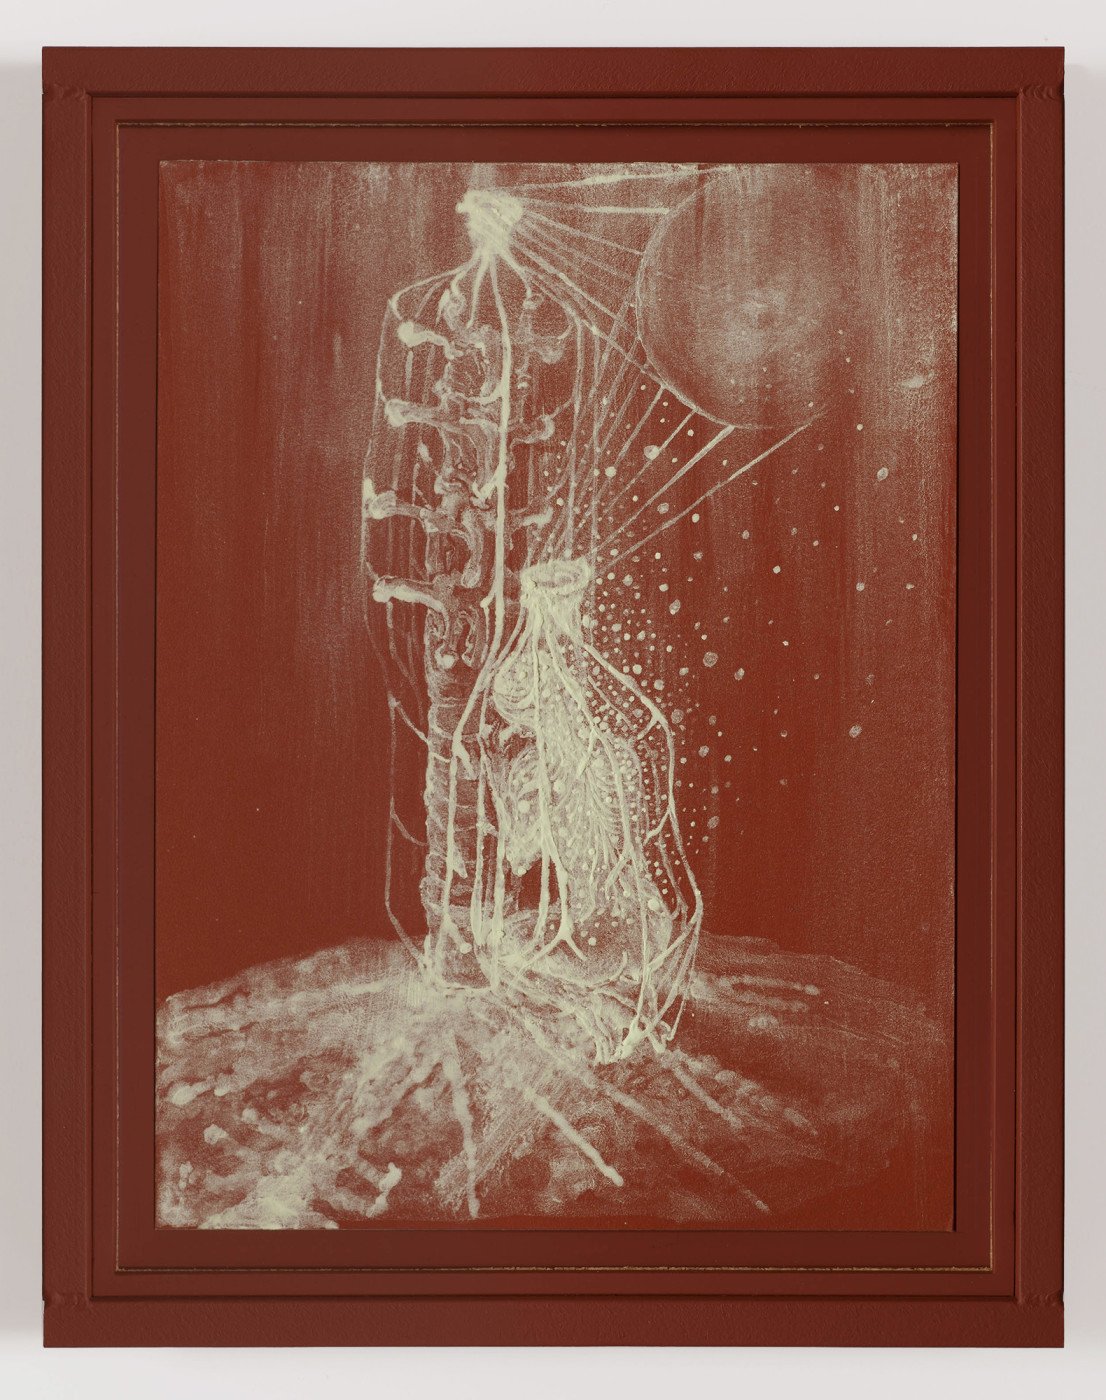 """<div class=""""title""""><em>RIVER ROUGE: Raising of Djed</em>, 2011</div><div class=""""signed_and_dated"""">engraved signature and date on verso</div><div class=""""medium"""">sulfur on paper in painted steel frame</div><div class=""""dimensions"""">36.5 x 28.6 x 3.8 cm<br />14 3/8 x 11 1/4 x 1 1/2 in.</div>"""